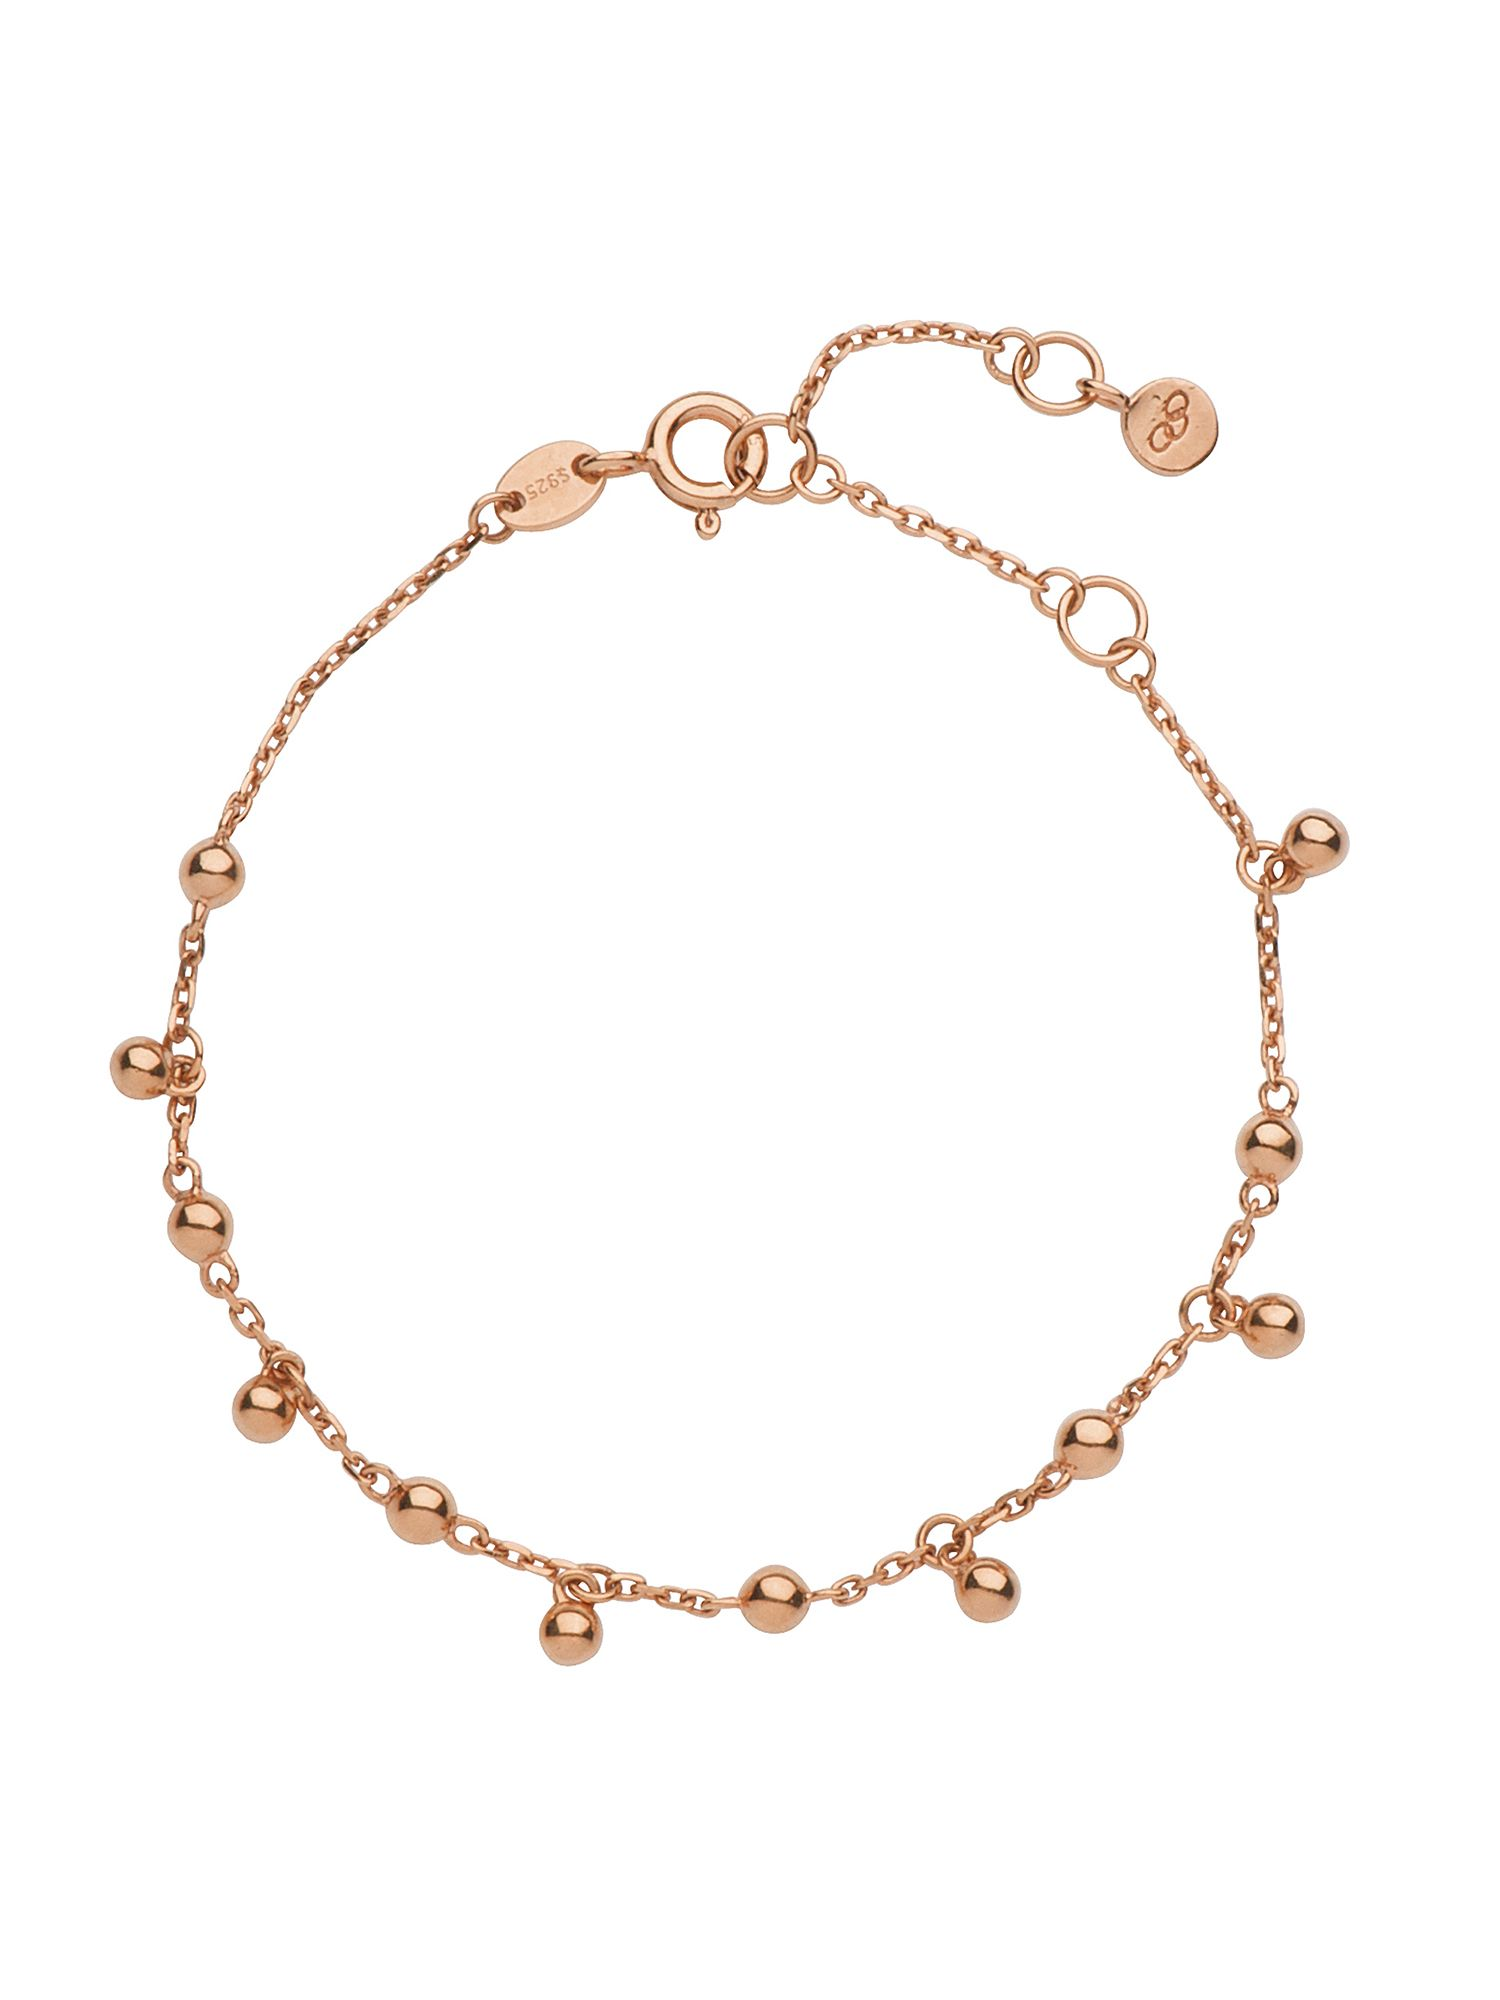 Effervescence bubble 18ct rose gold bracelet